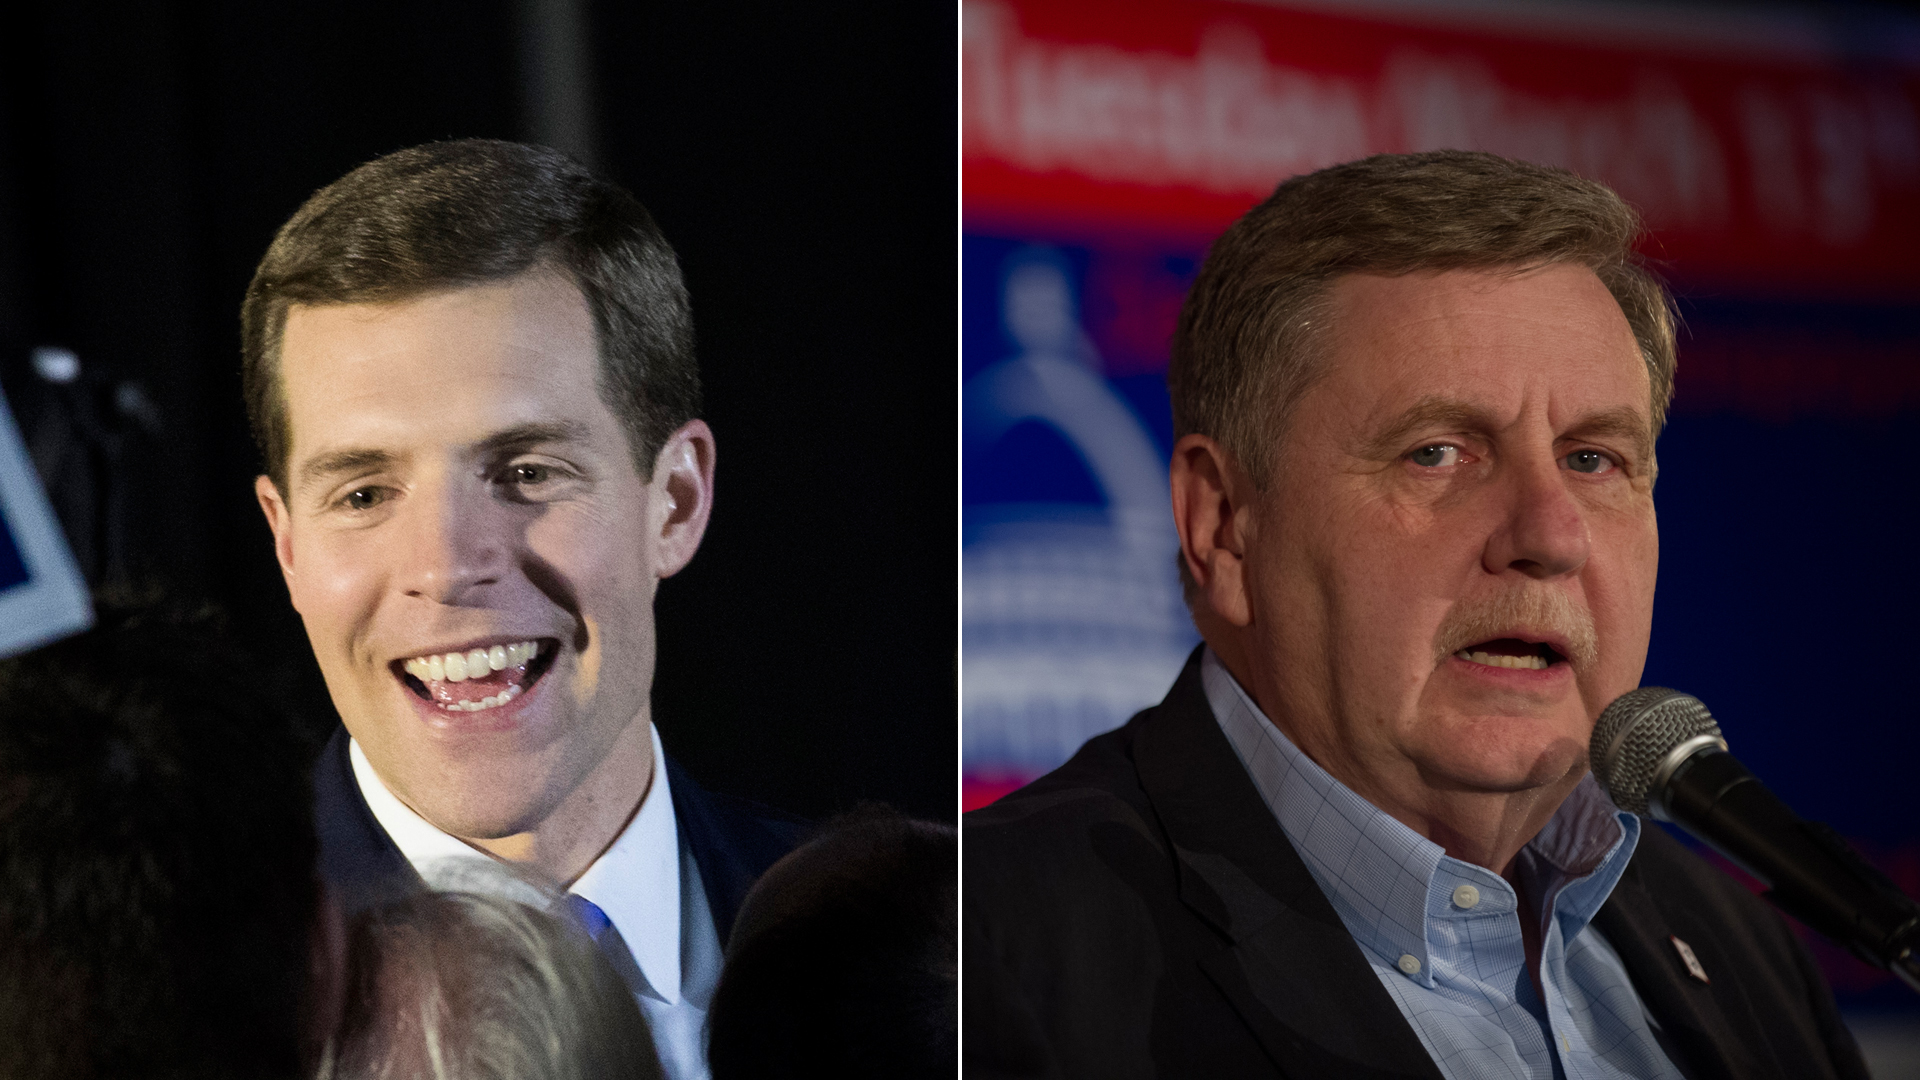 Conor Lamb, Democratic congressional candidate for Pennsylvania's 18th district, greets supporters at an election night rally March 13, 2018, in Canonsburg. Meanwhile, GOP candidate Rick Saccone speaks to supporters in Elizabeth Township. (Credit: Getty Images; left, Drew Angerer / right, Jeff Swensen)